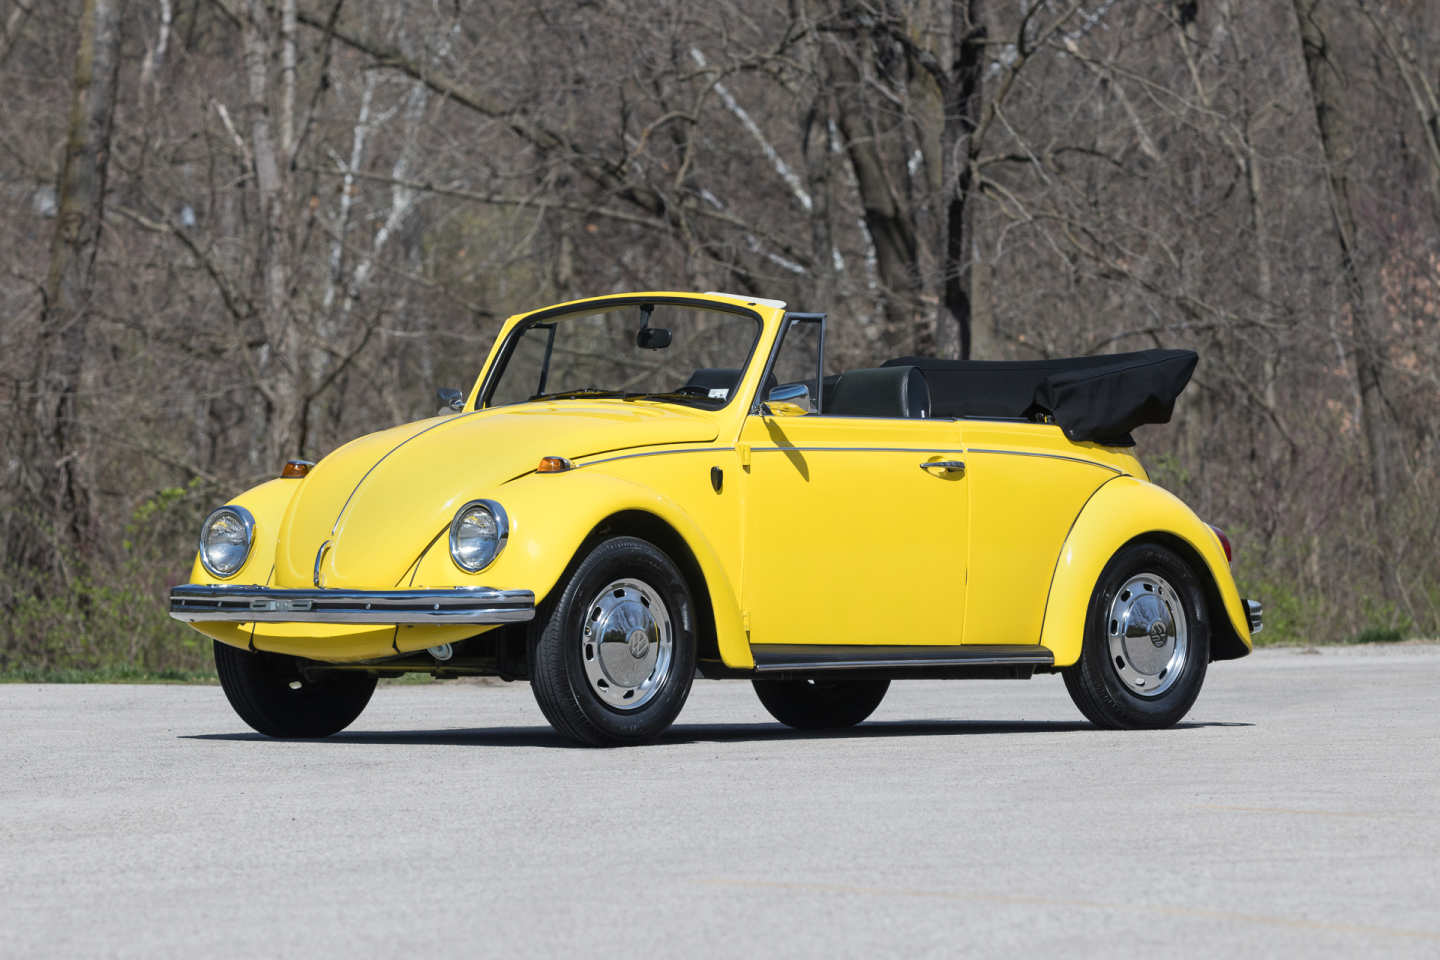 1968 VOLKSWAGEN BEETLE For Sale at Vicari Auctions Nocona